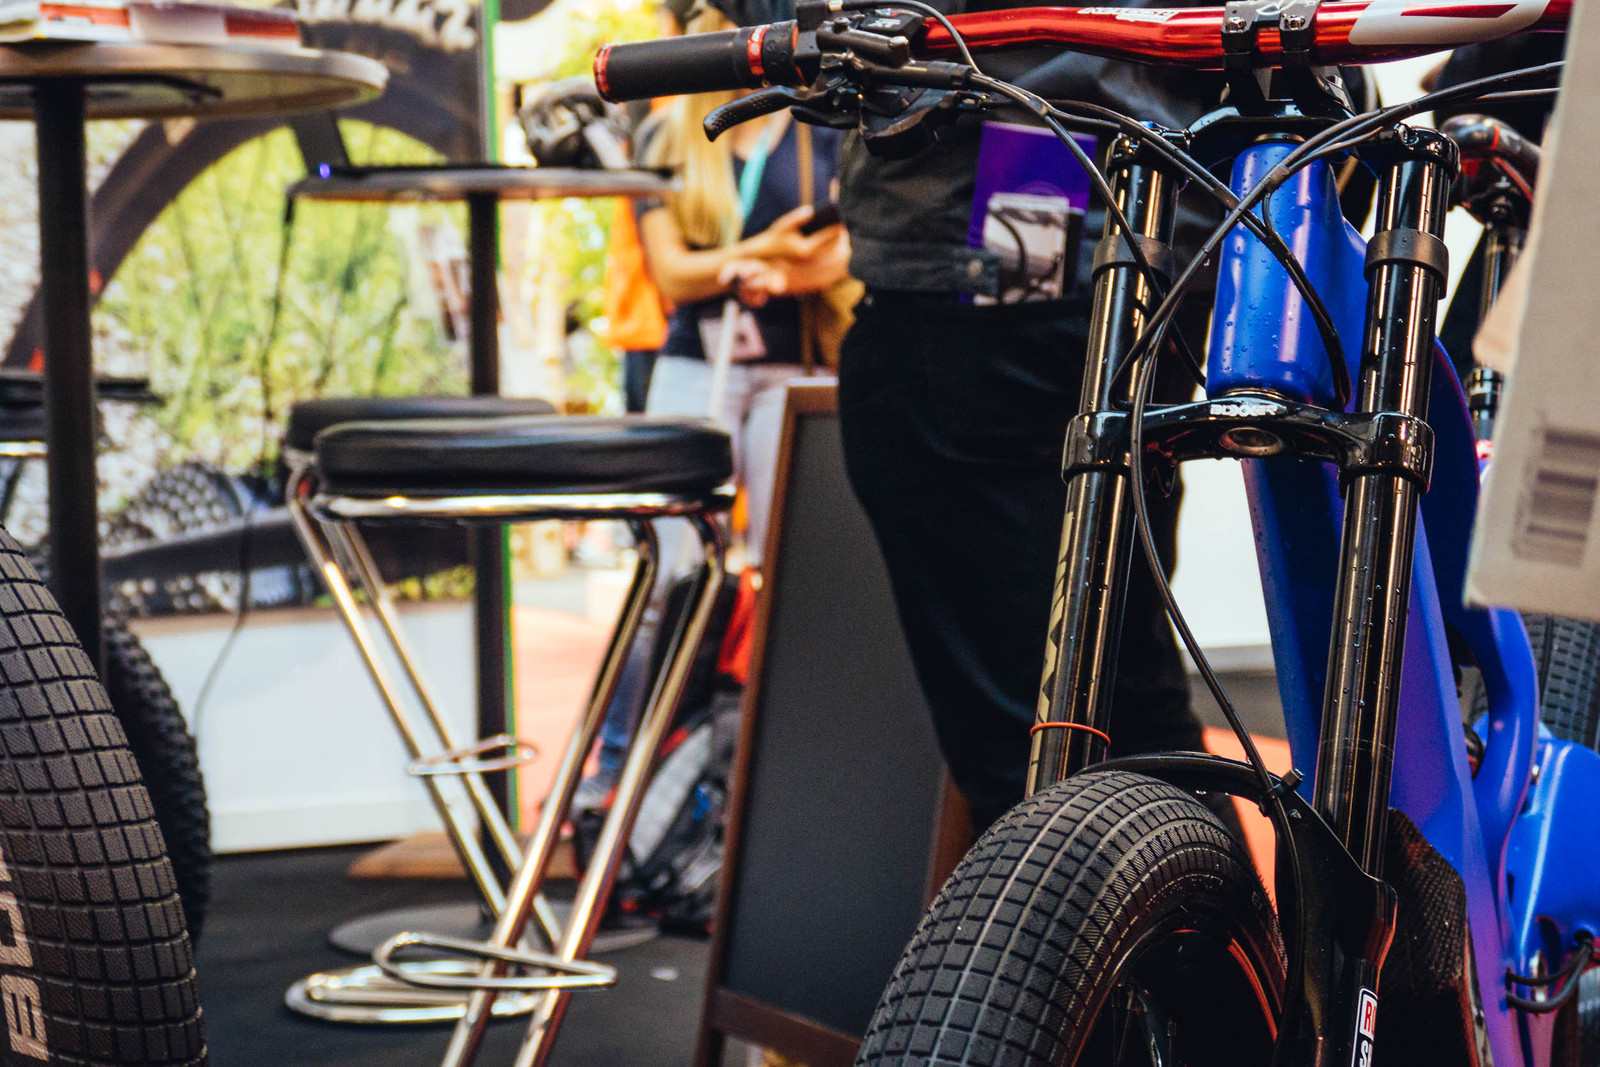 New DH Tires for Cairns? - iceman2058 - Mountain Biking Pictures - Vital MTB